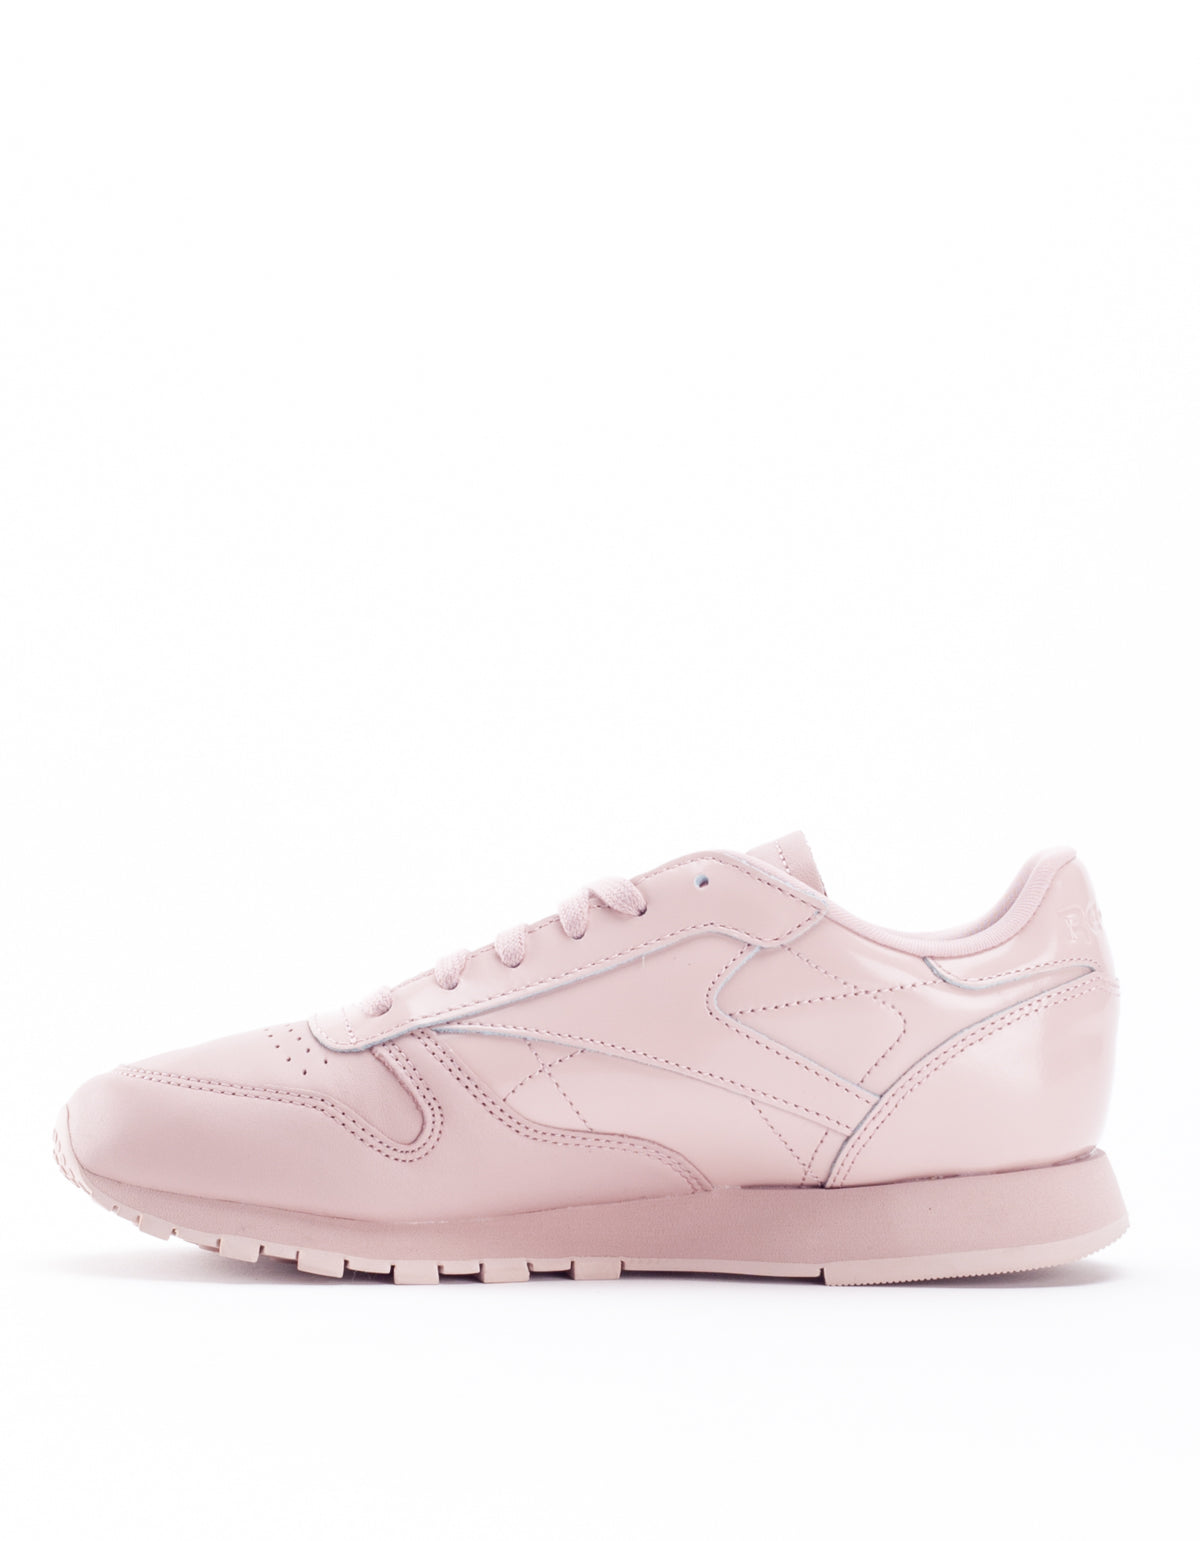 Reebok Classic Leather IL Shell Pink